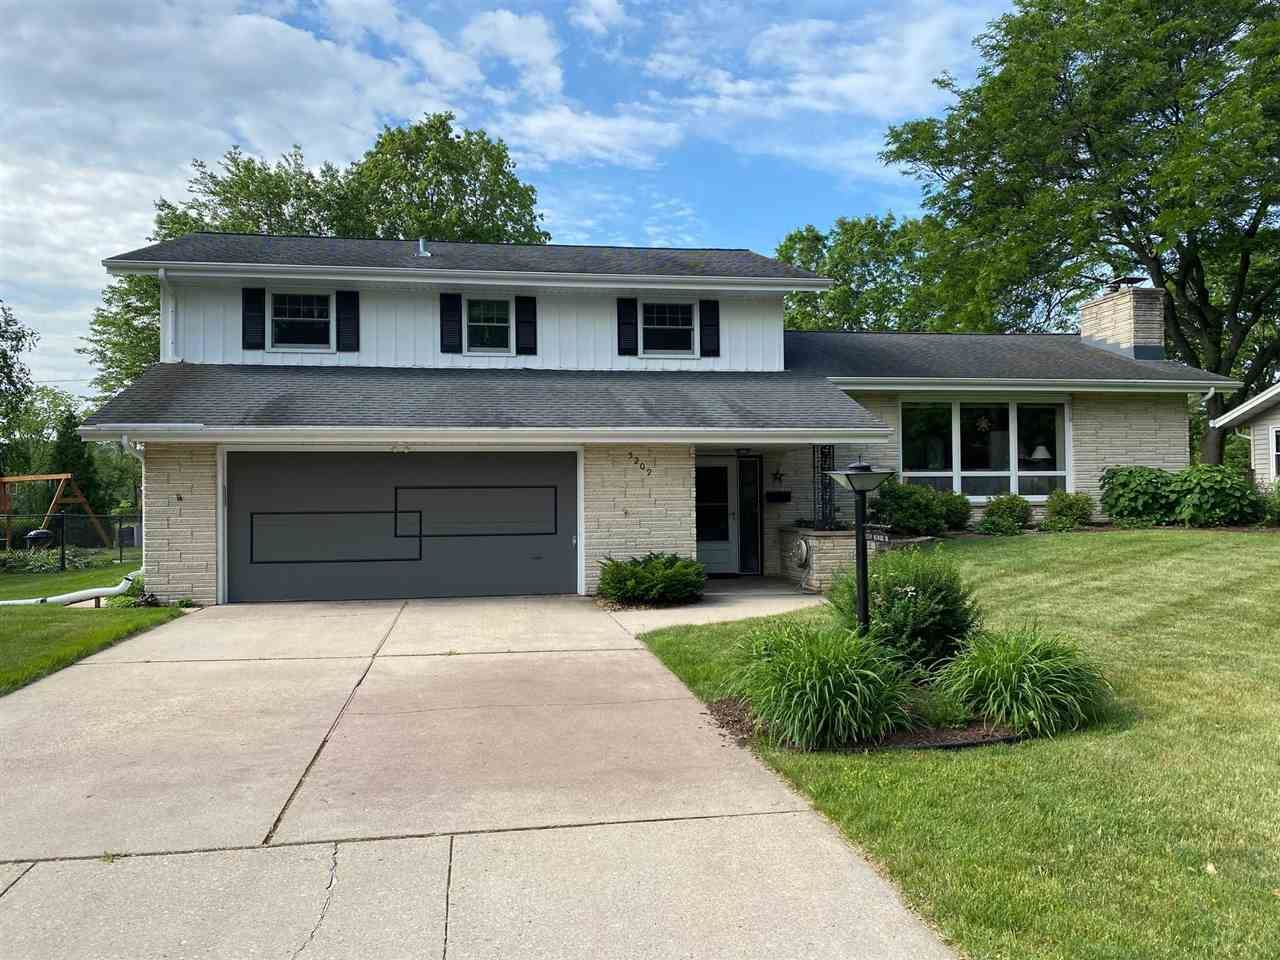 Photo for 5209 Milward Dr, Madison, WI 53711 (MLS # 1910950)